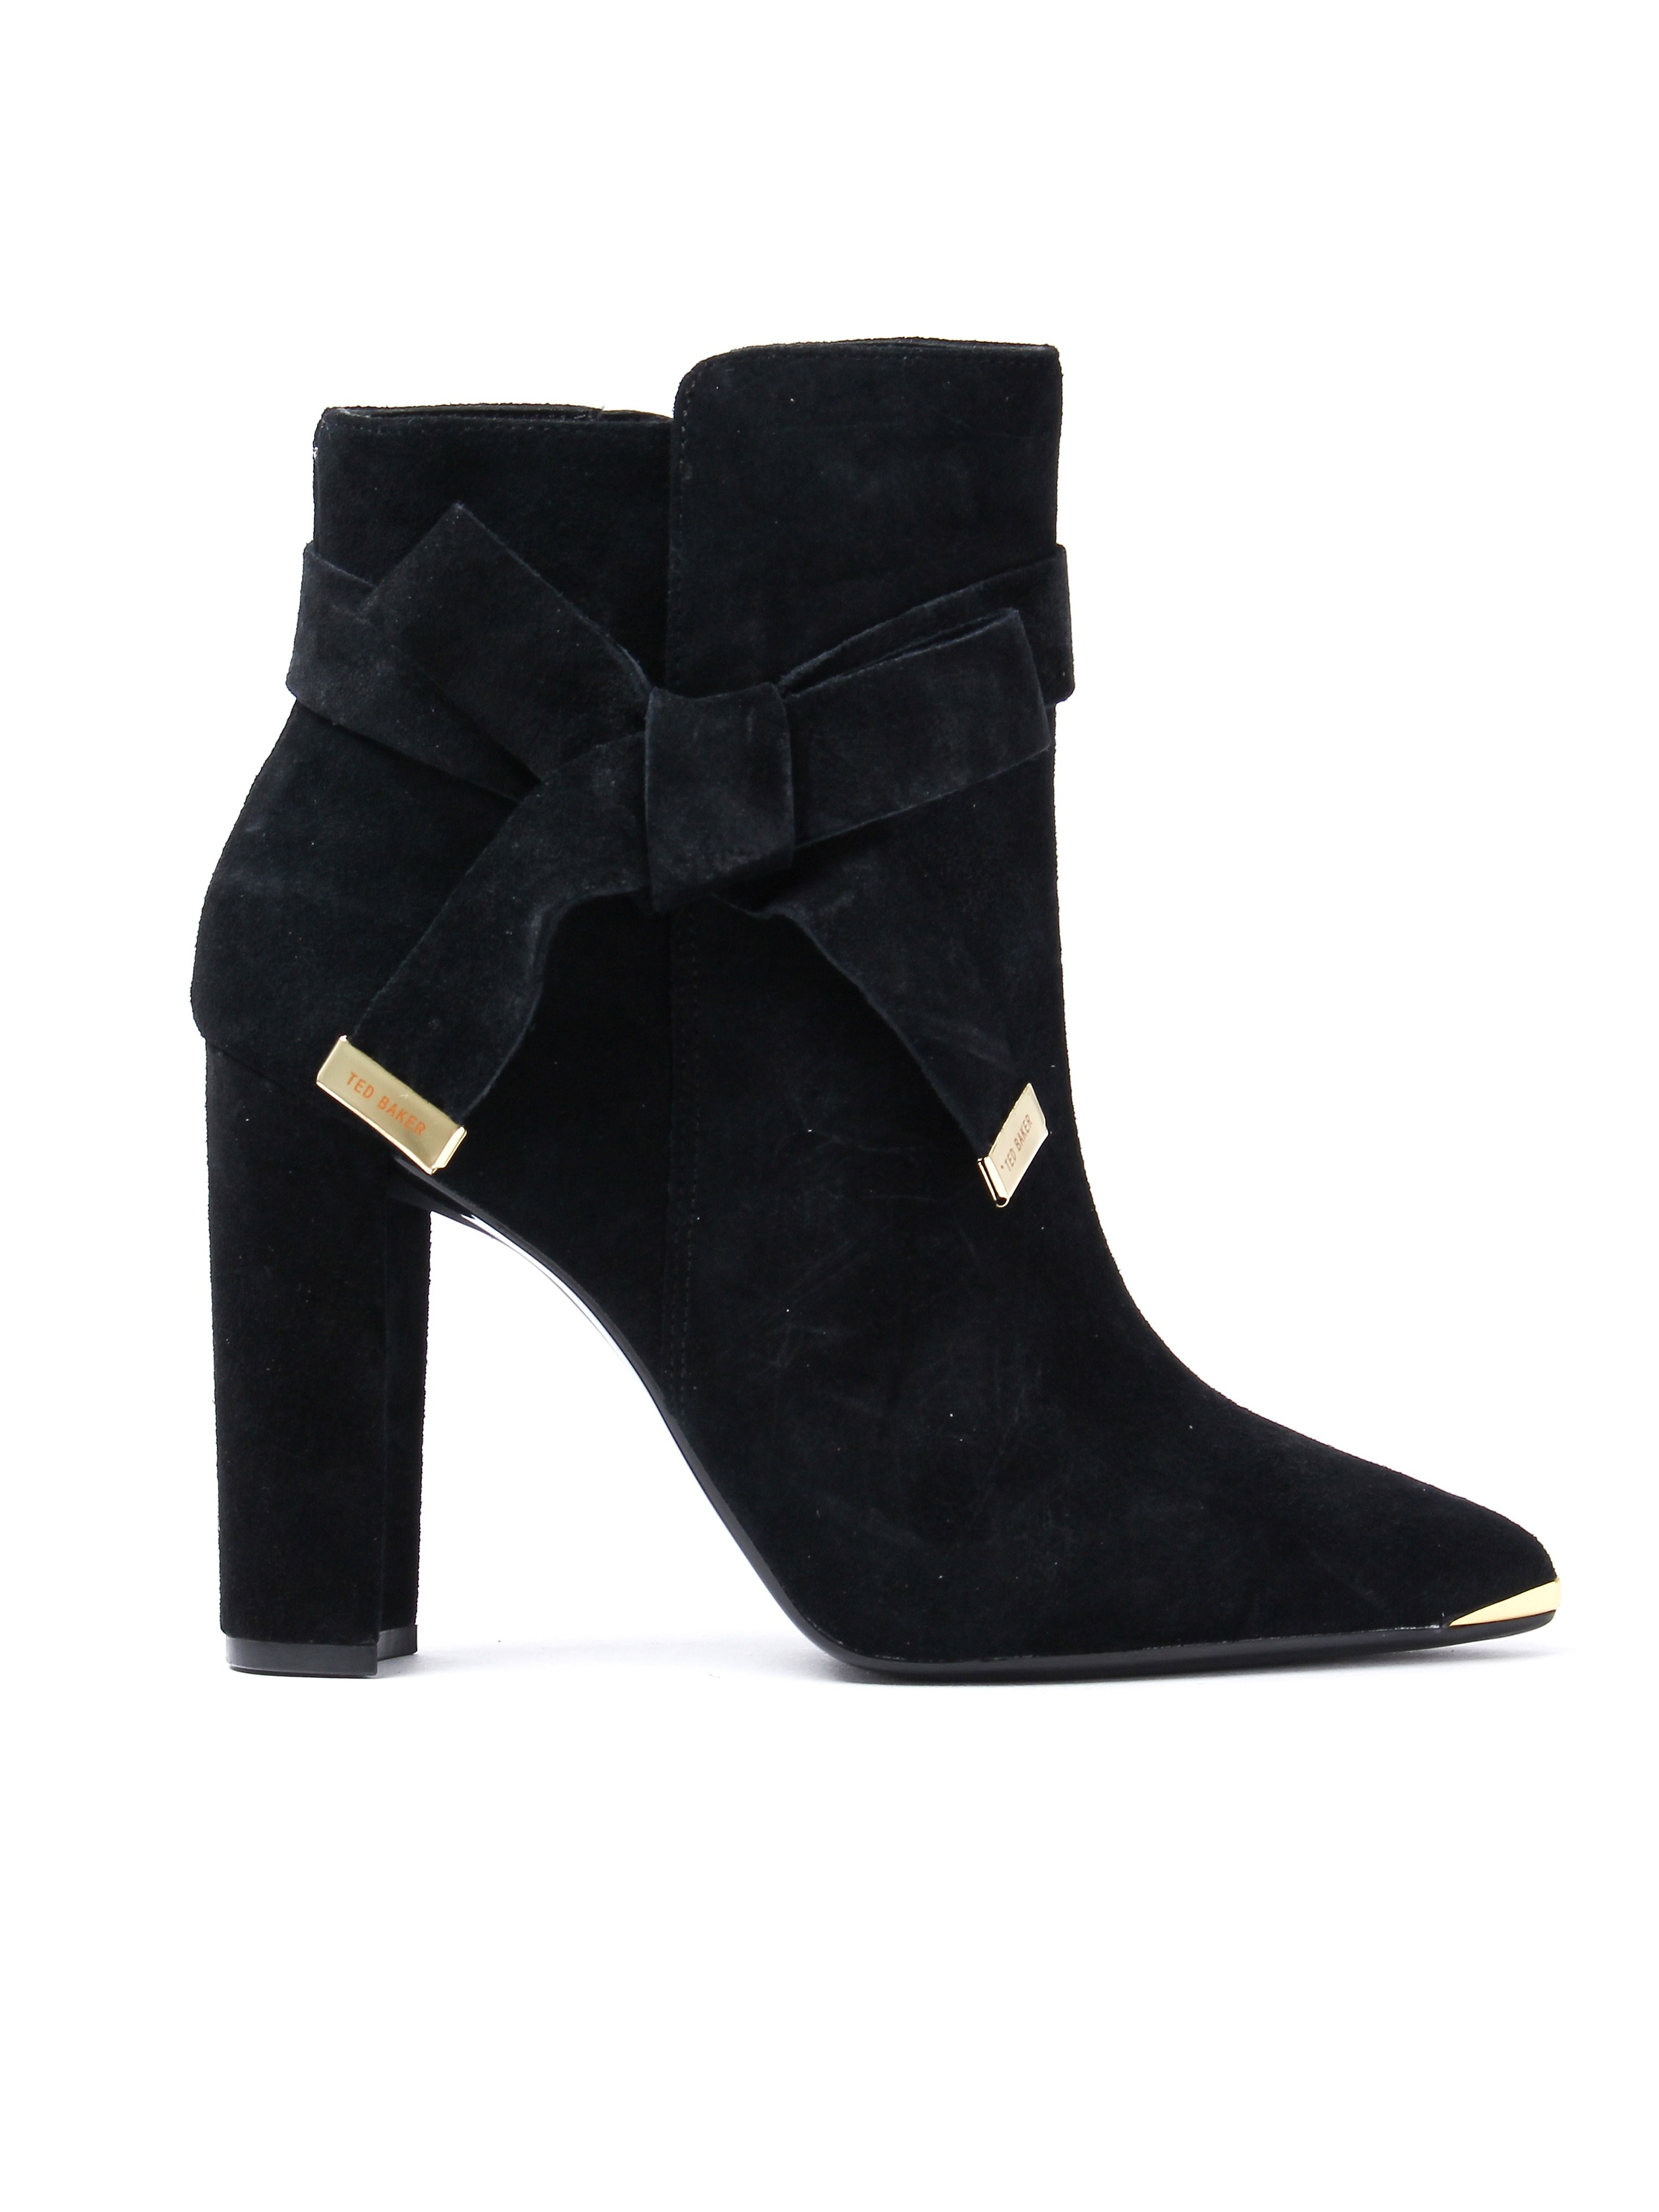 Ted Baker Women's Sailly Ankle Boots - Black Suede